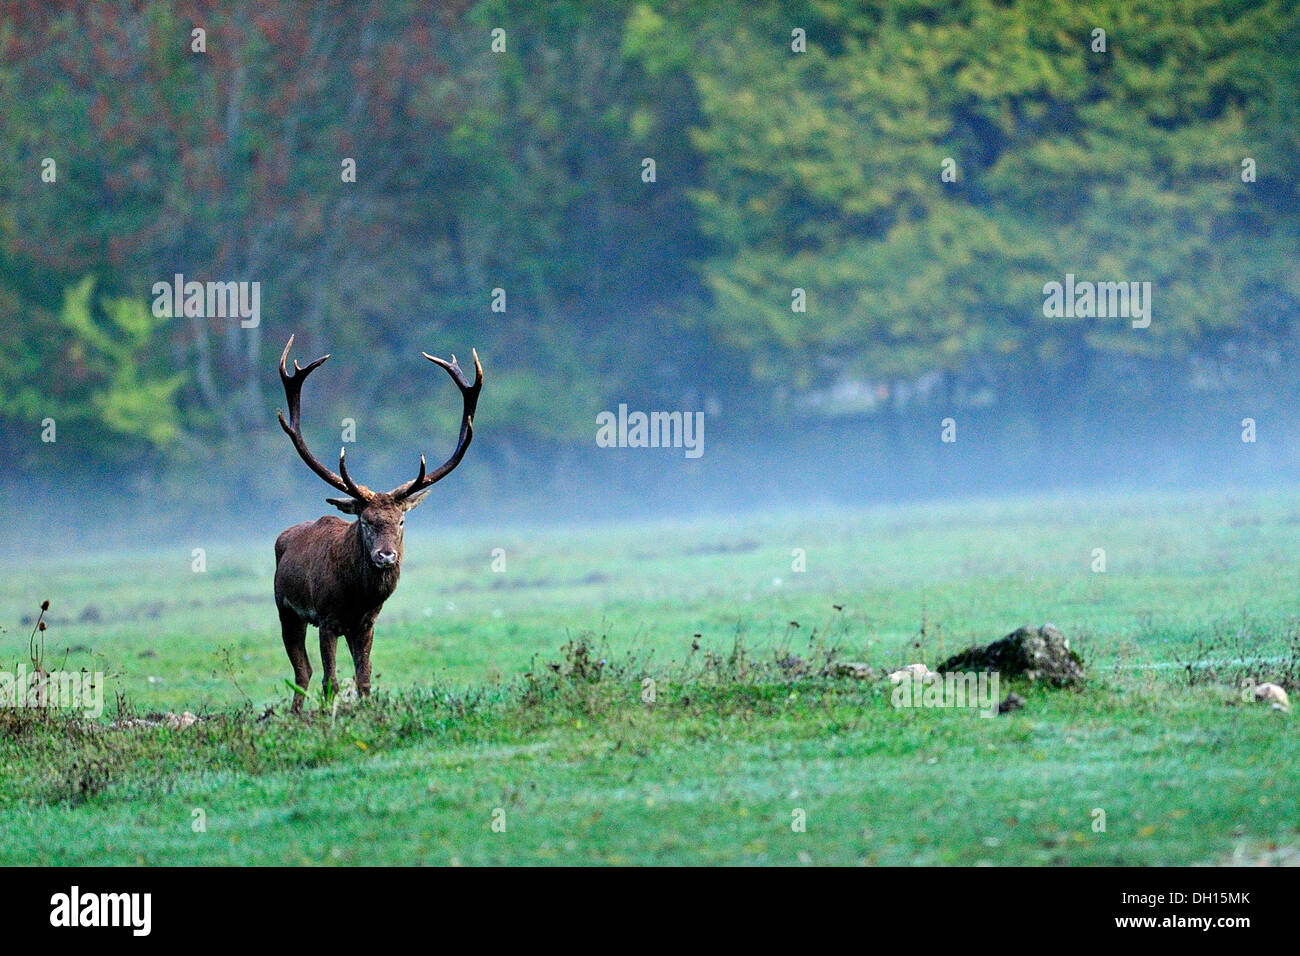 Male of Red deer (Cervus elaphus), Cervidae, Abruzzo National Park, Italy - Stock Image